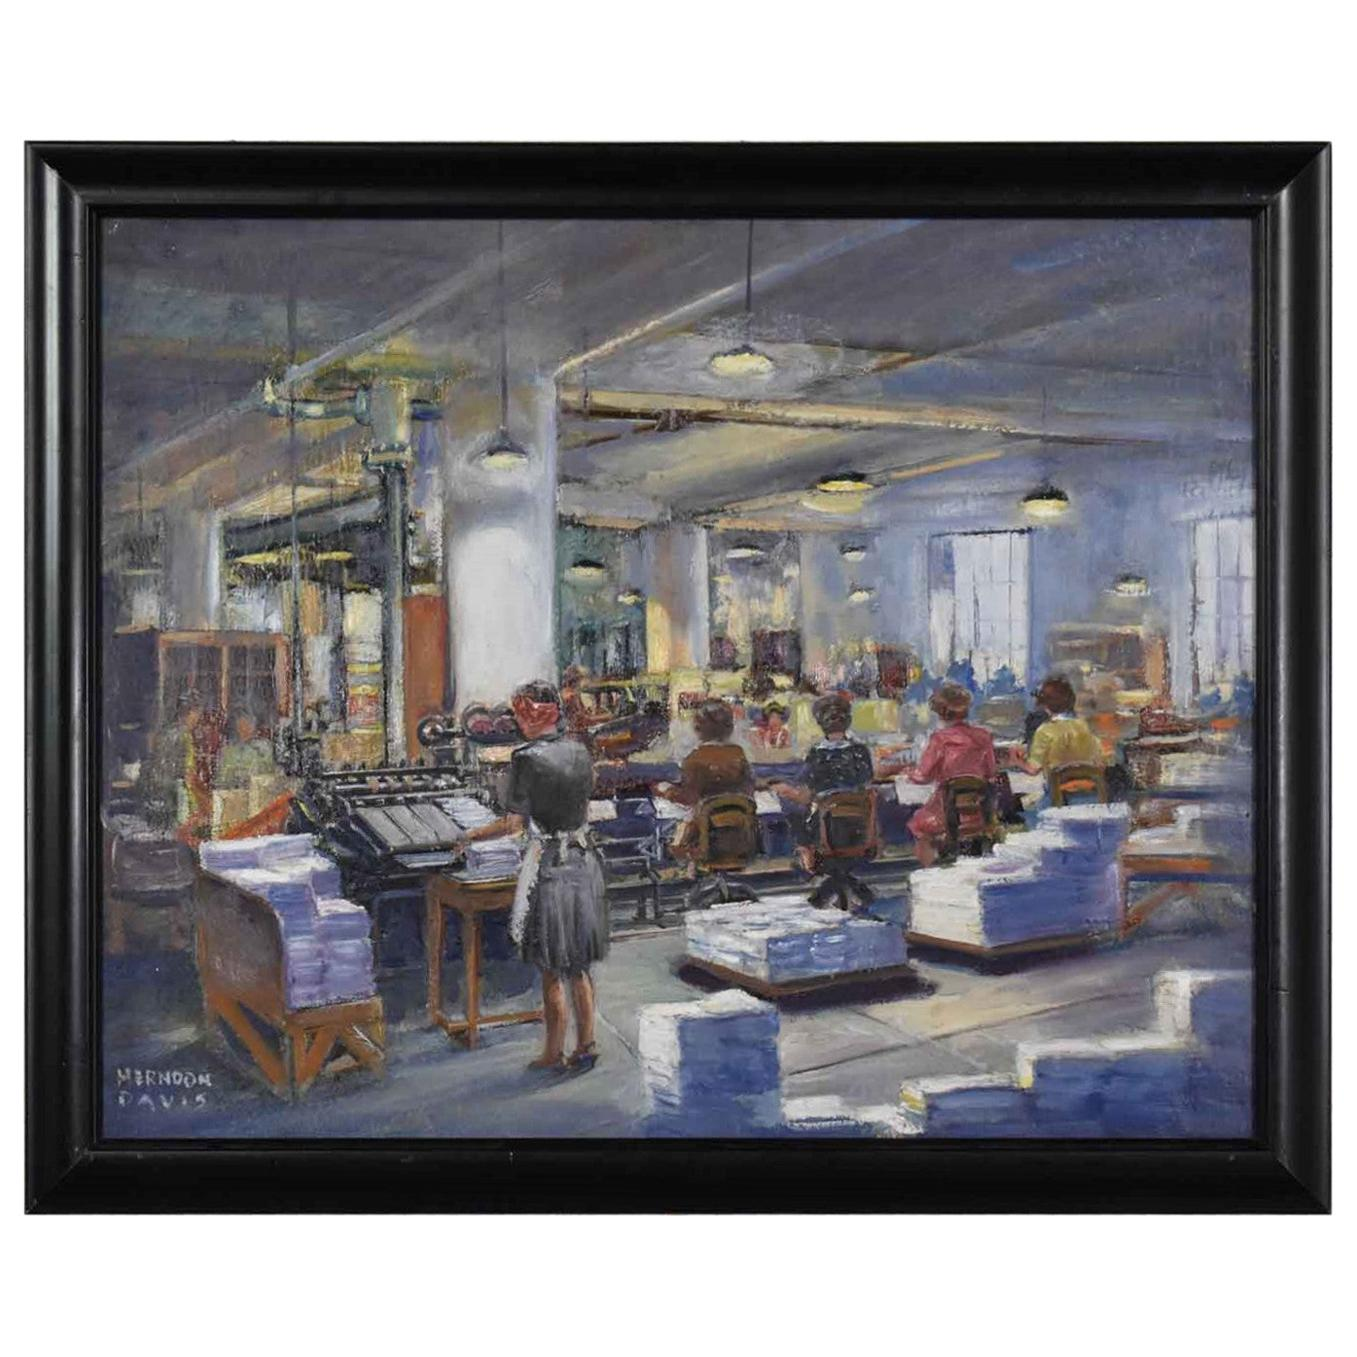 1940s Painting by Colorado Artist Herndon Davis of Industrial Interior